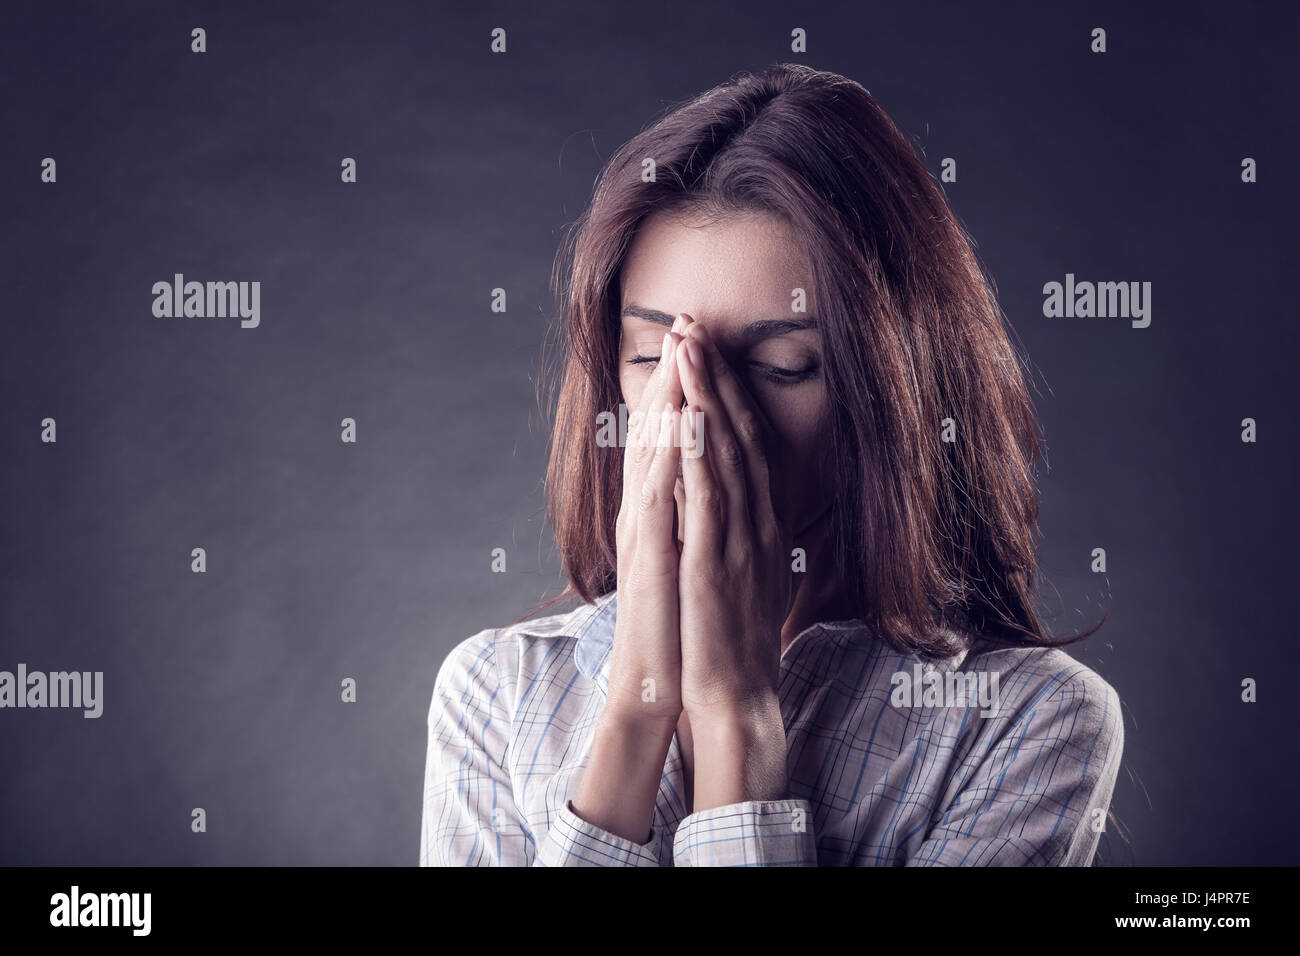 Young woman crying face in his hands on a black background - Stock Image